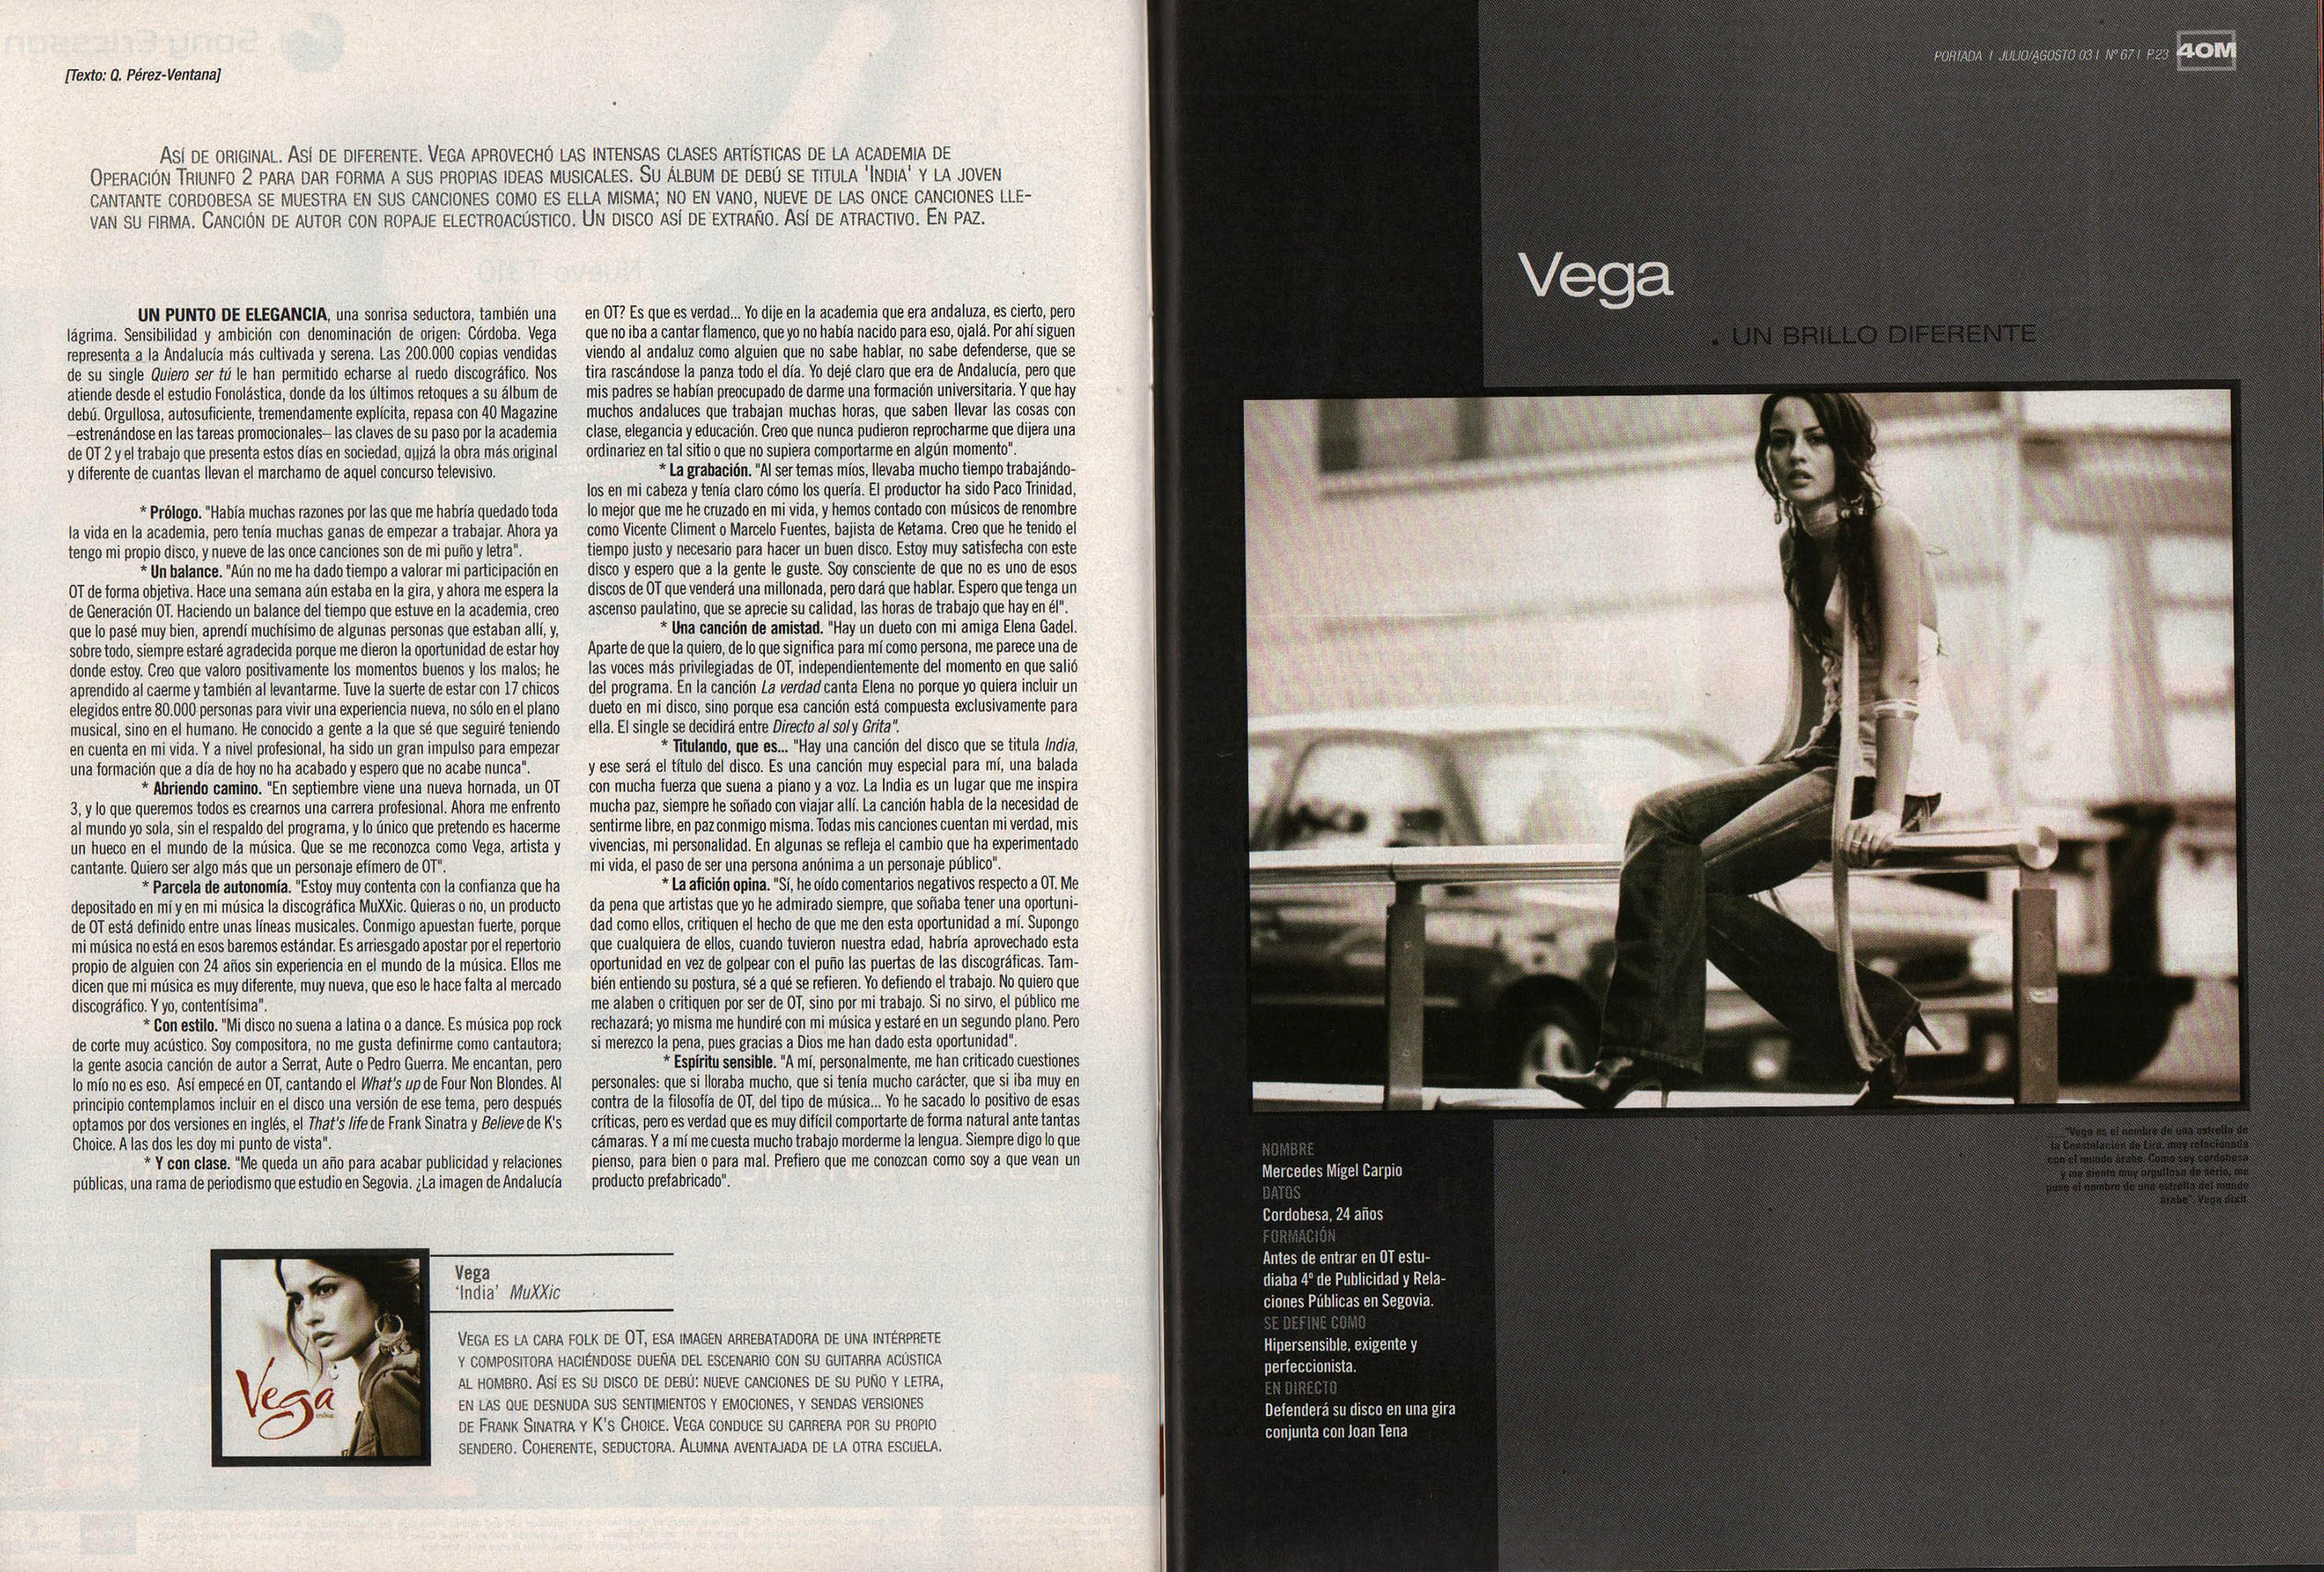 Vega: un brillo diferente - India - Mercedes Migel Carpio | 40 Magazine | jul 2003